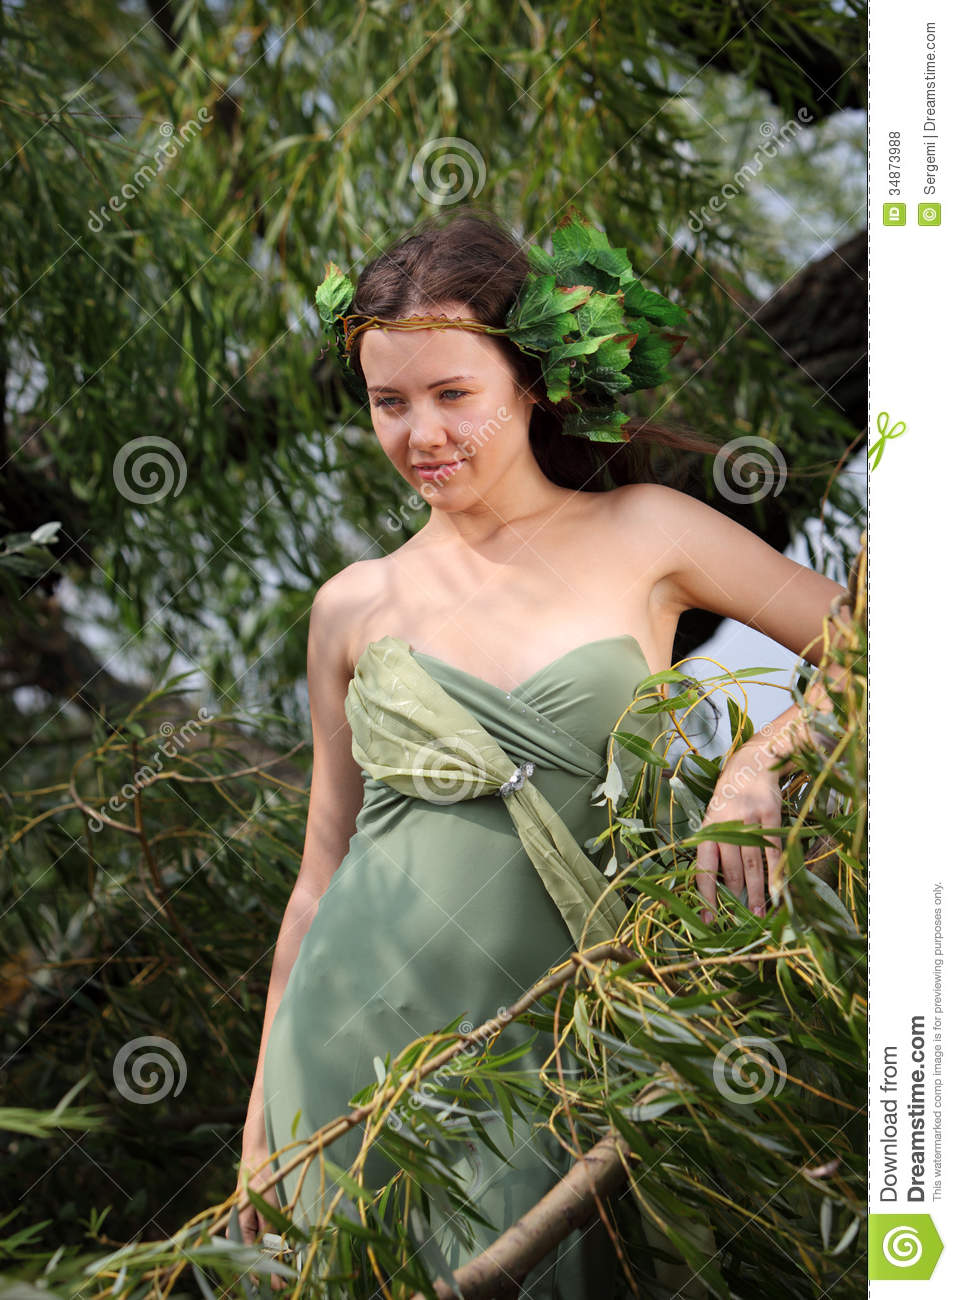 Forest Nymph Royalty Free Stock Photos - Image: 34873988: http://dreamstime.com/royalty-free-stock-photos-forest-nymph-young-cheerful-girl-image-image34873988